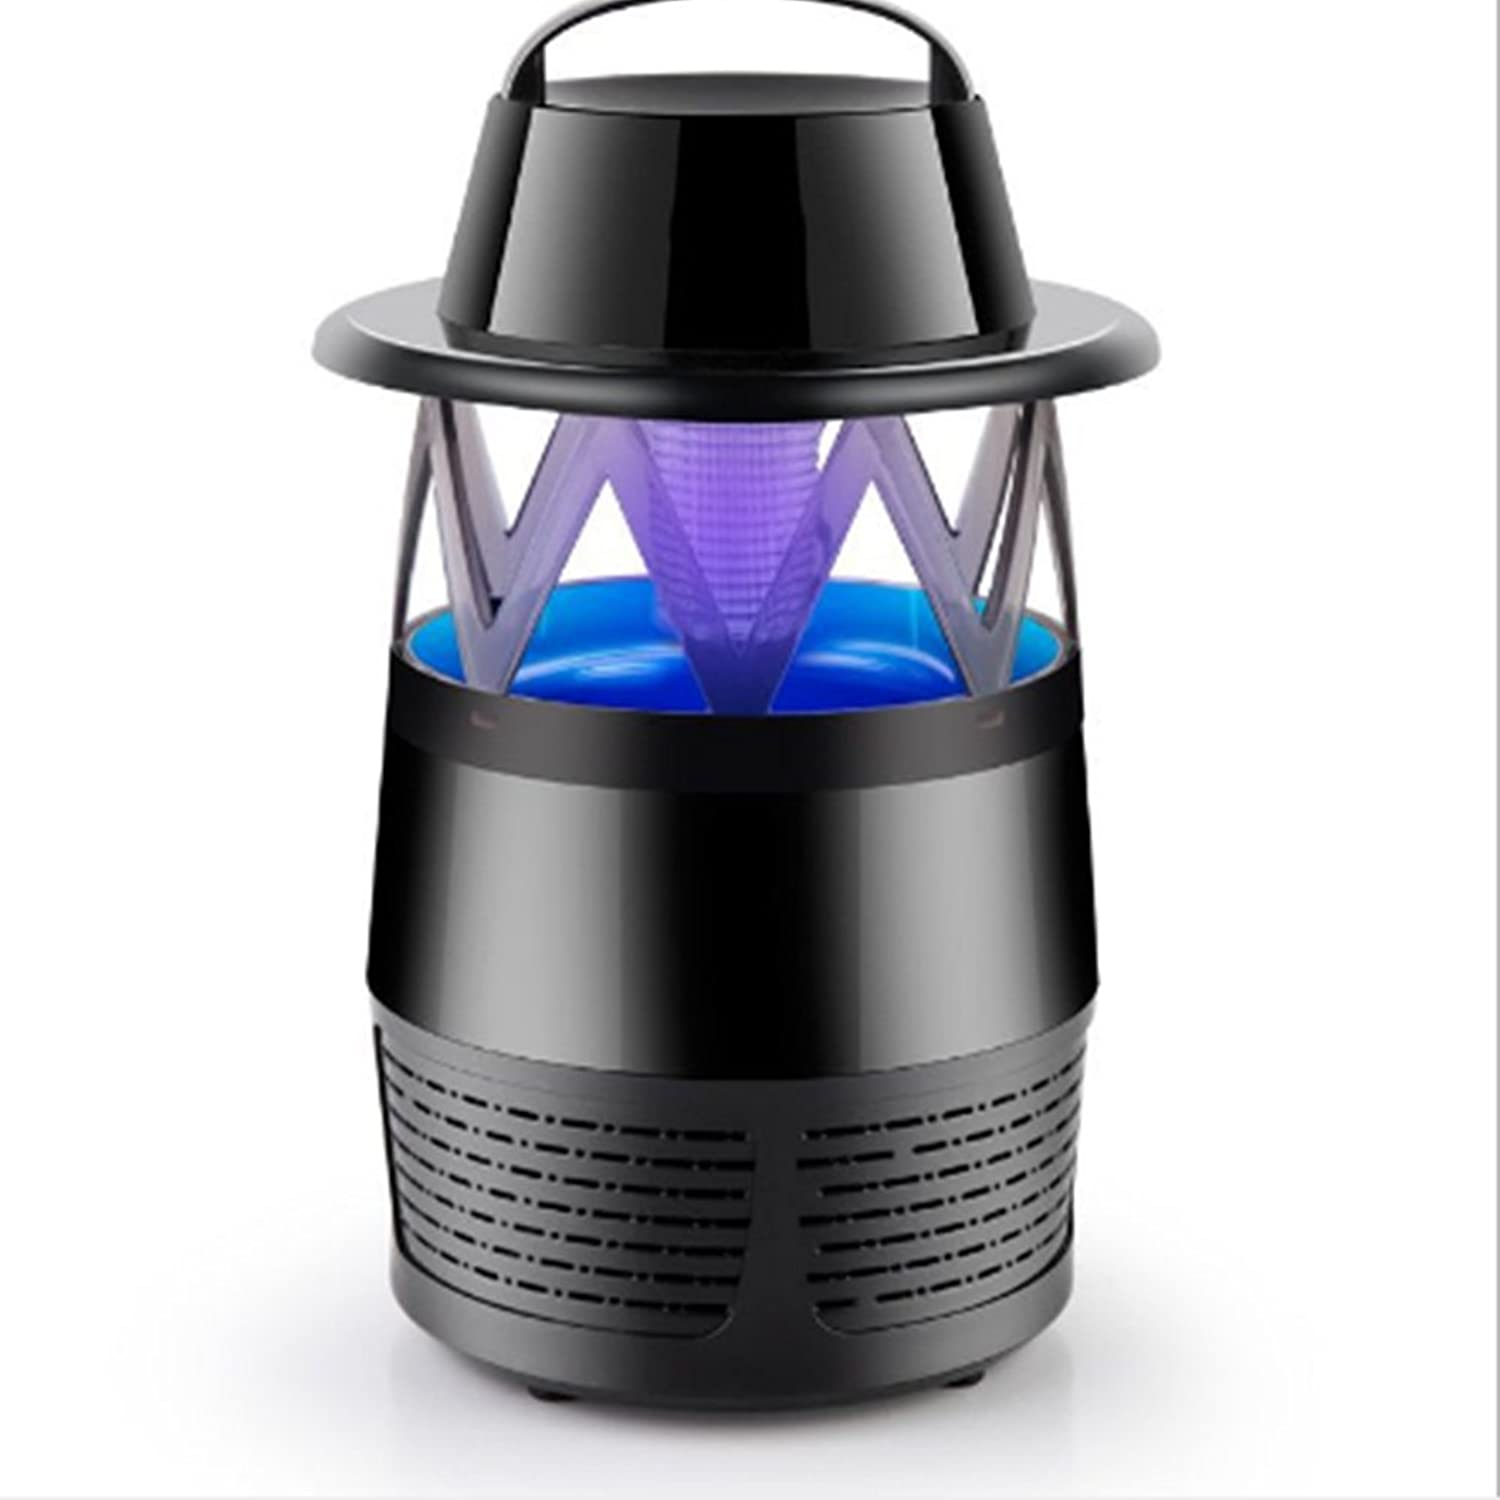 USB Charging Mosquito Killer Lamp No Radiation Photocatalyst Pregnant Woman Baby Repellent Lamp ( color   Black )